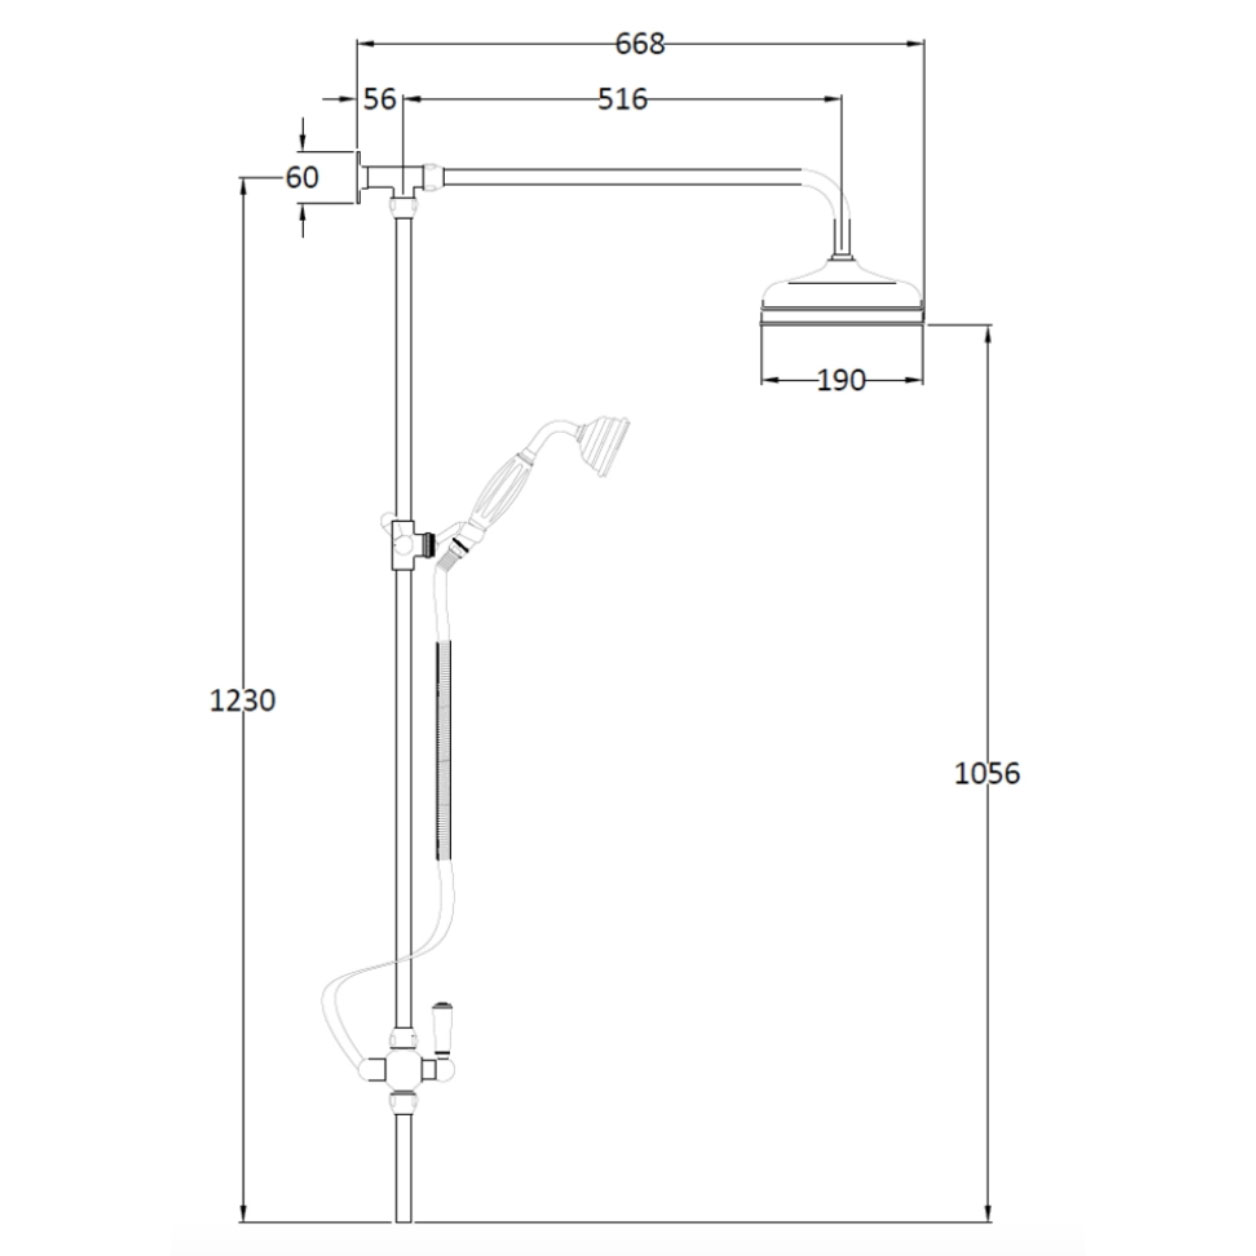 Bathwaters Technical BC Designs Victrion Superbe Rigid Riser Kit with Shower Head